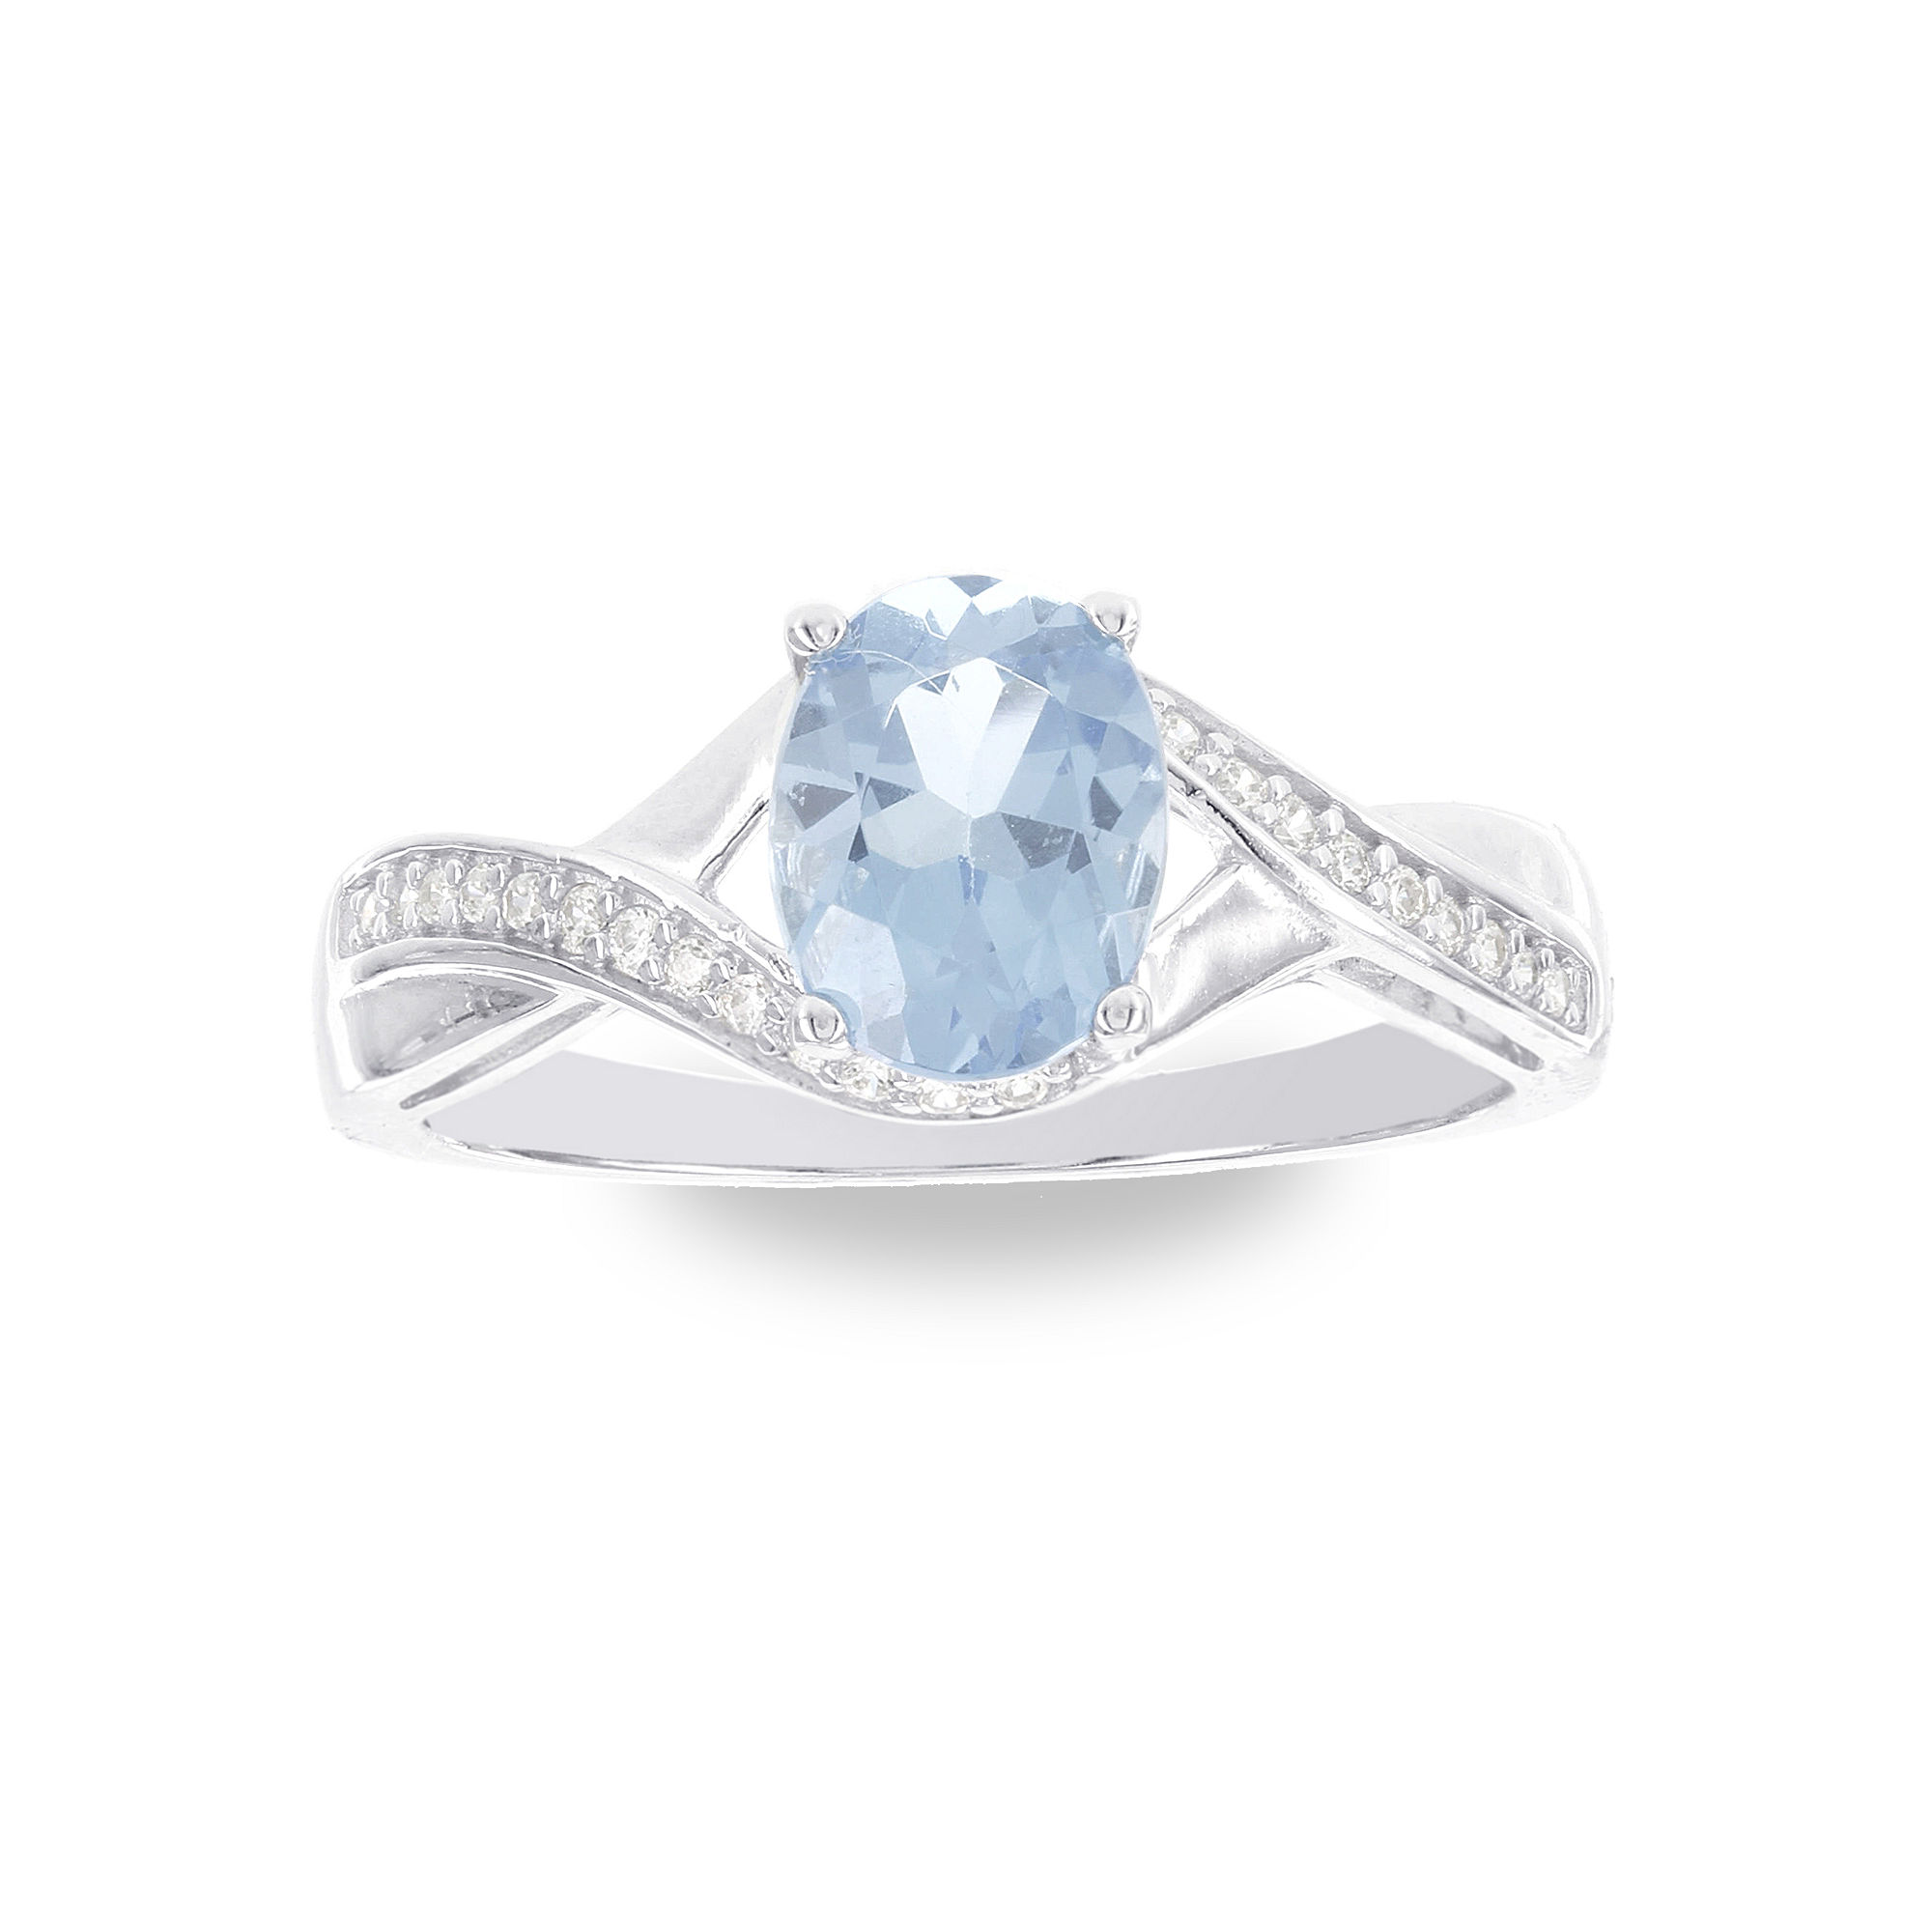 1/8 CT. T.W. Blue Topaz 14K Gold Cocktail Ring